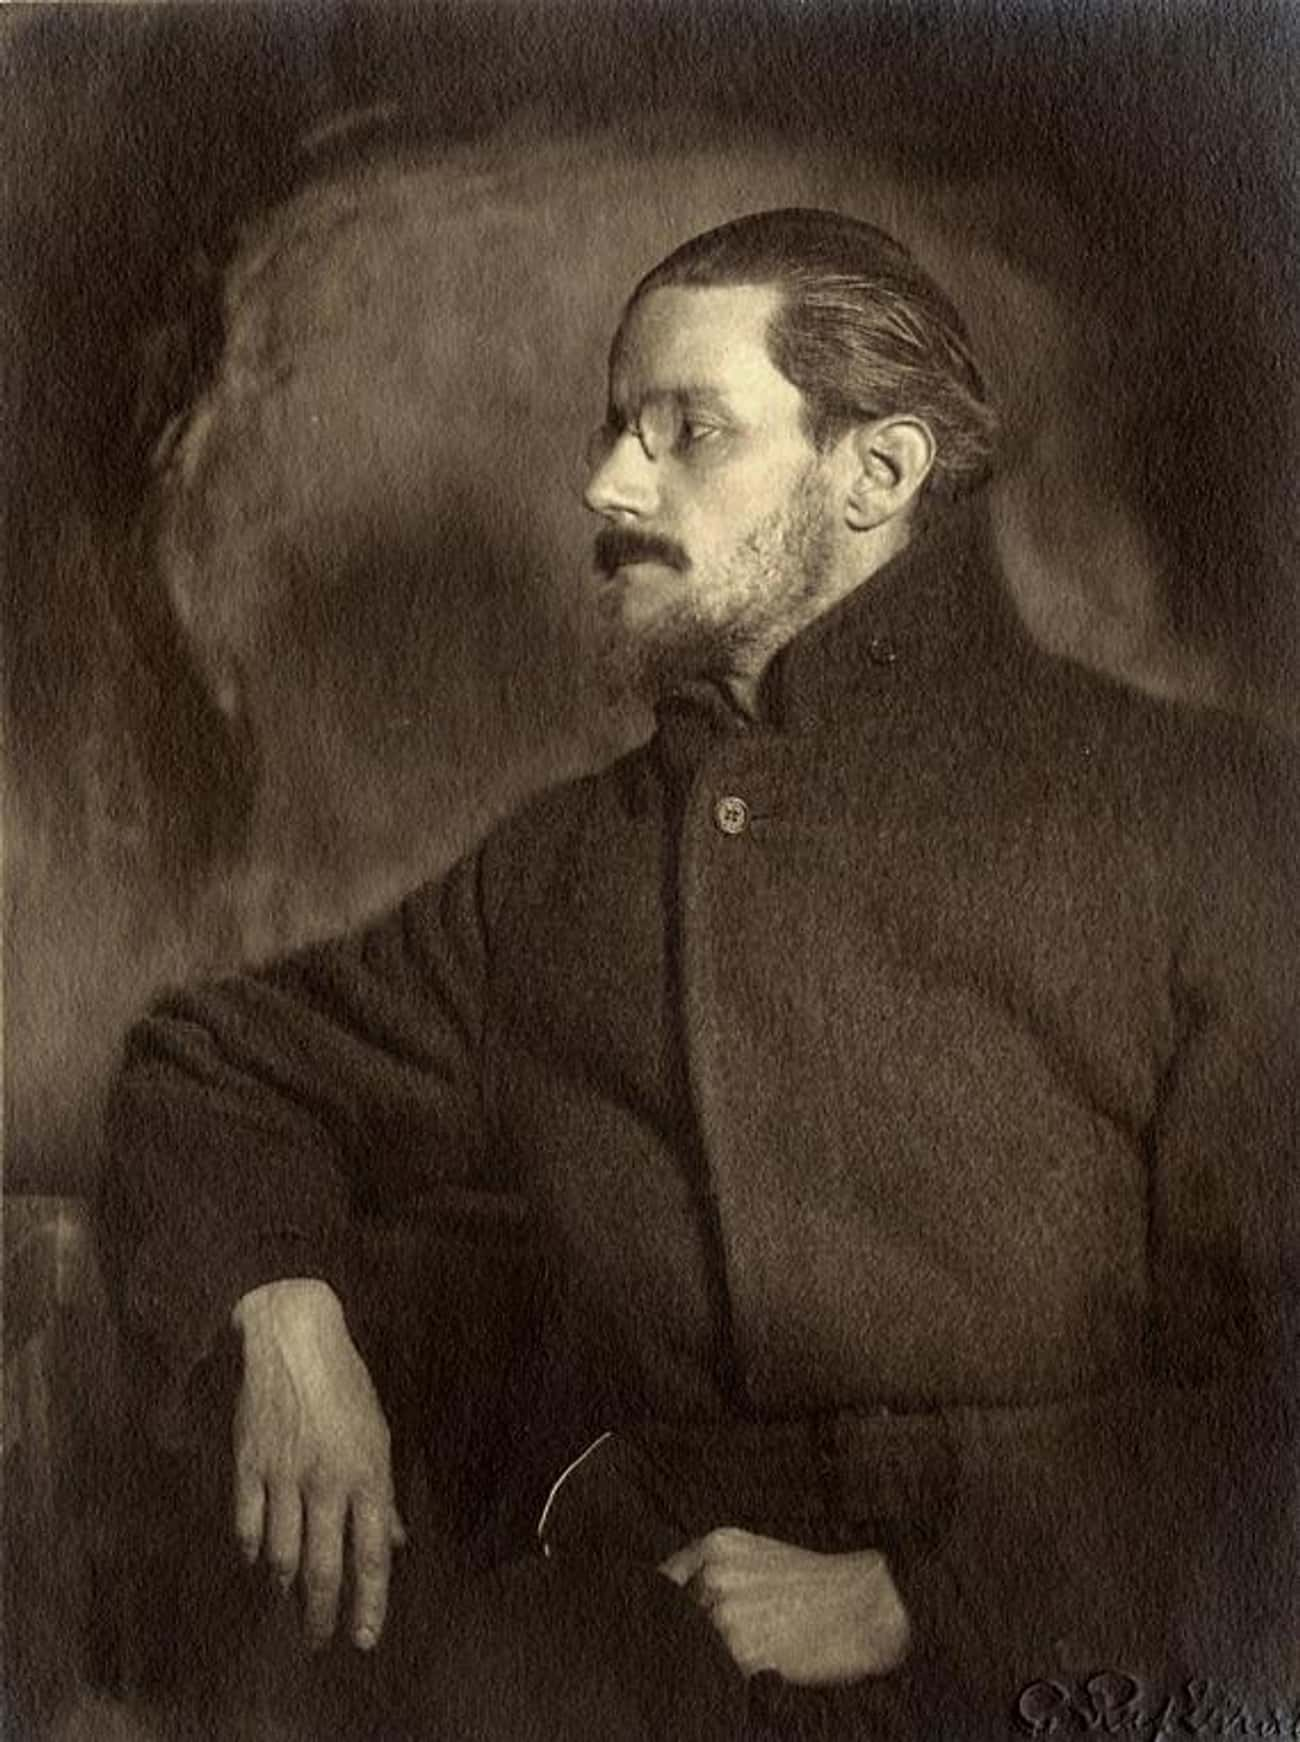 James Joyce Thought Farts Were Sexy